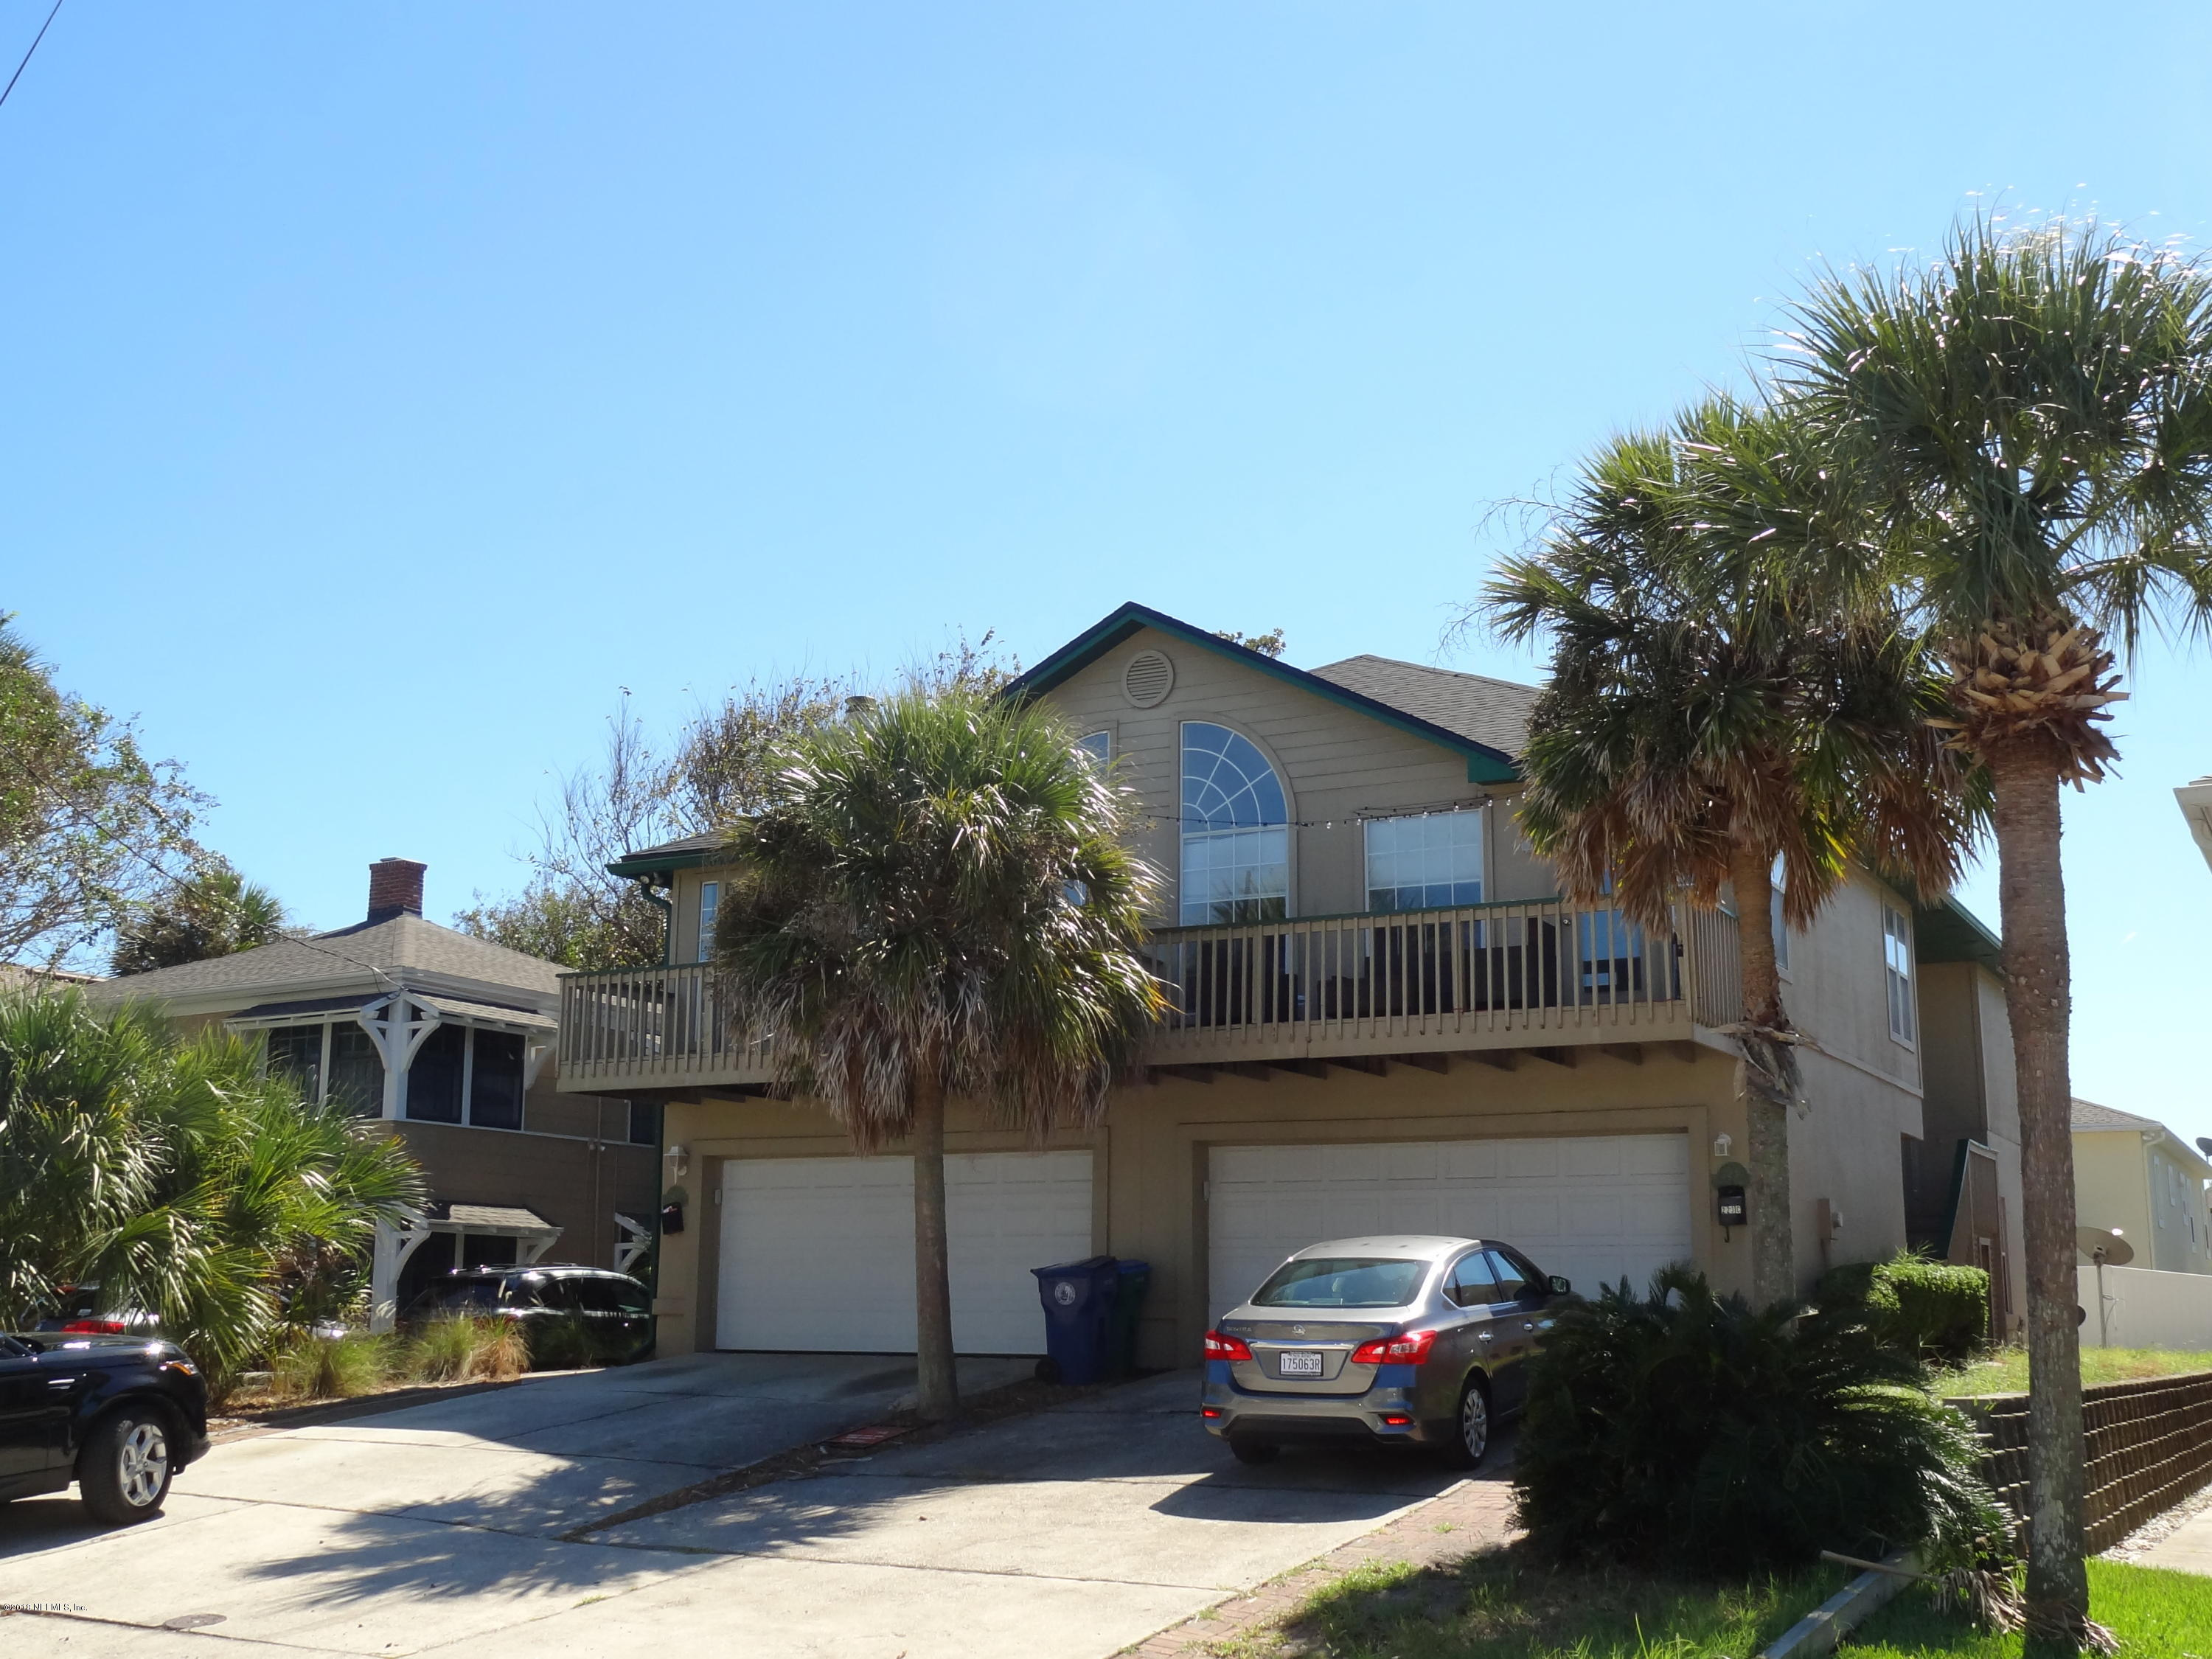 223 SOUTH, NEPTUNE BEACH, FLORIDA 32266, 6 Bedrooms Bedrooms, ,4 BathroomsBathrooms,Residential - townhome,For sale,SOUTH,961594